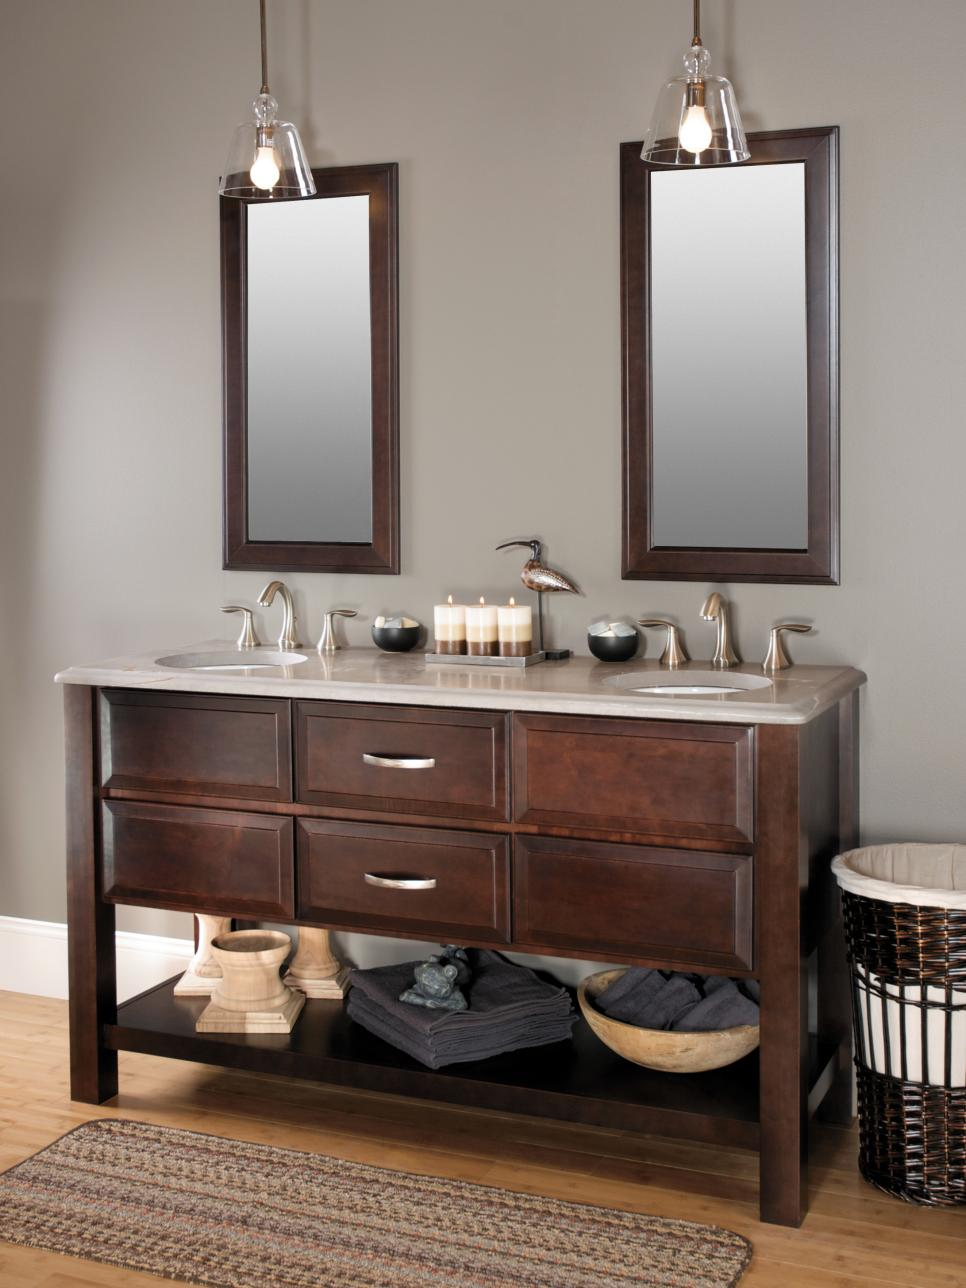 Bathroom cabinet styles and trends hgtv for Latest bathroom sinks